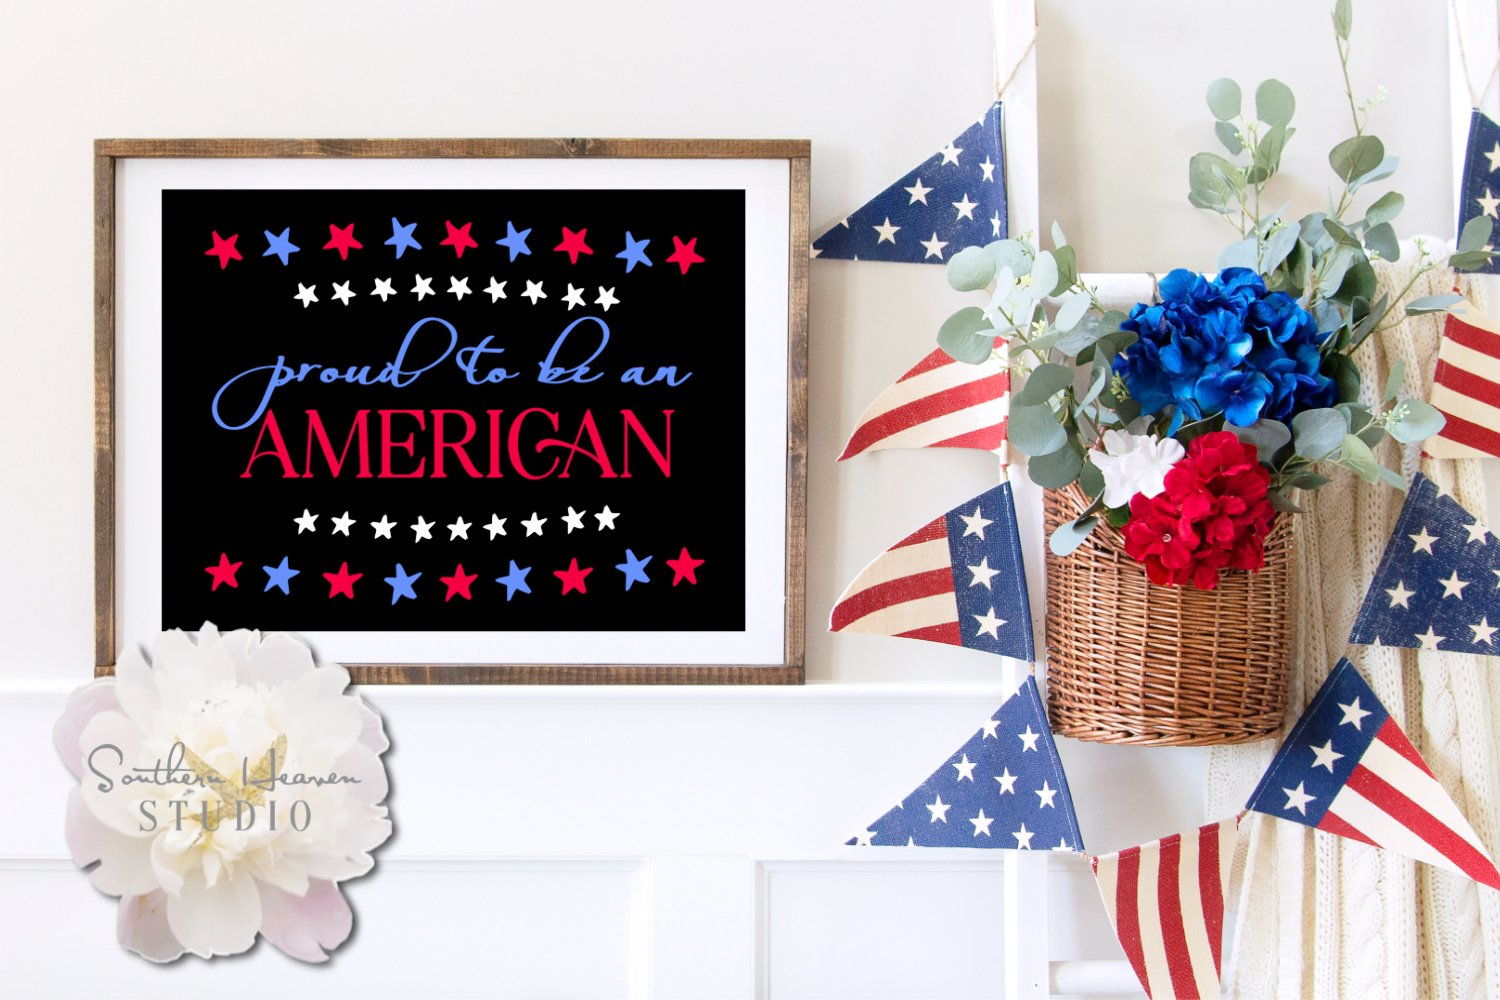 PROUD TO BE AN AMERICAN - SVG, PNG, DXF and EPS example image 1